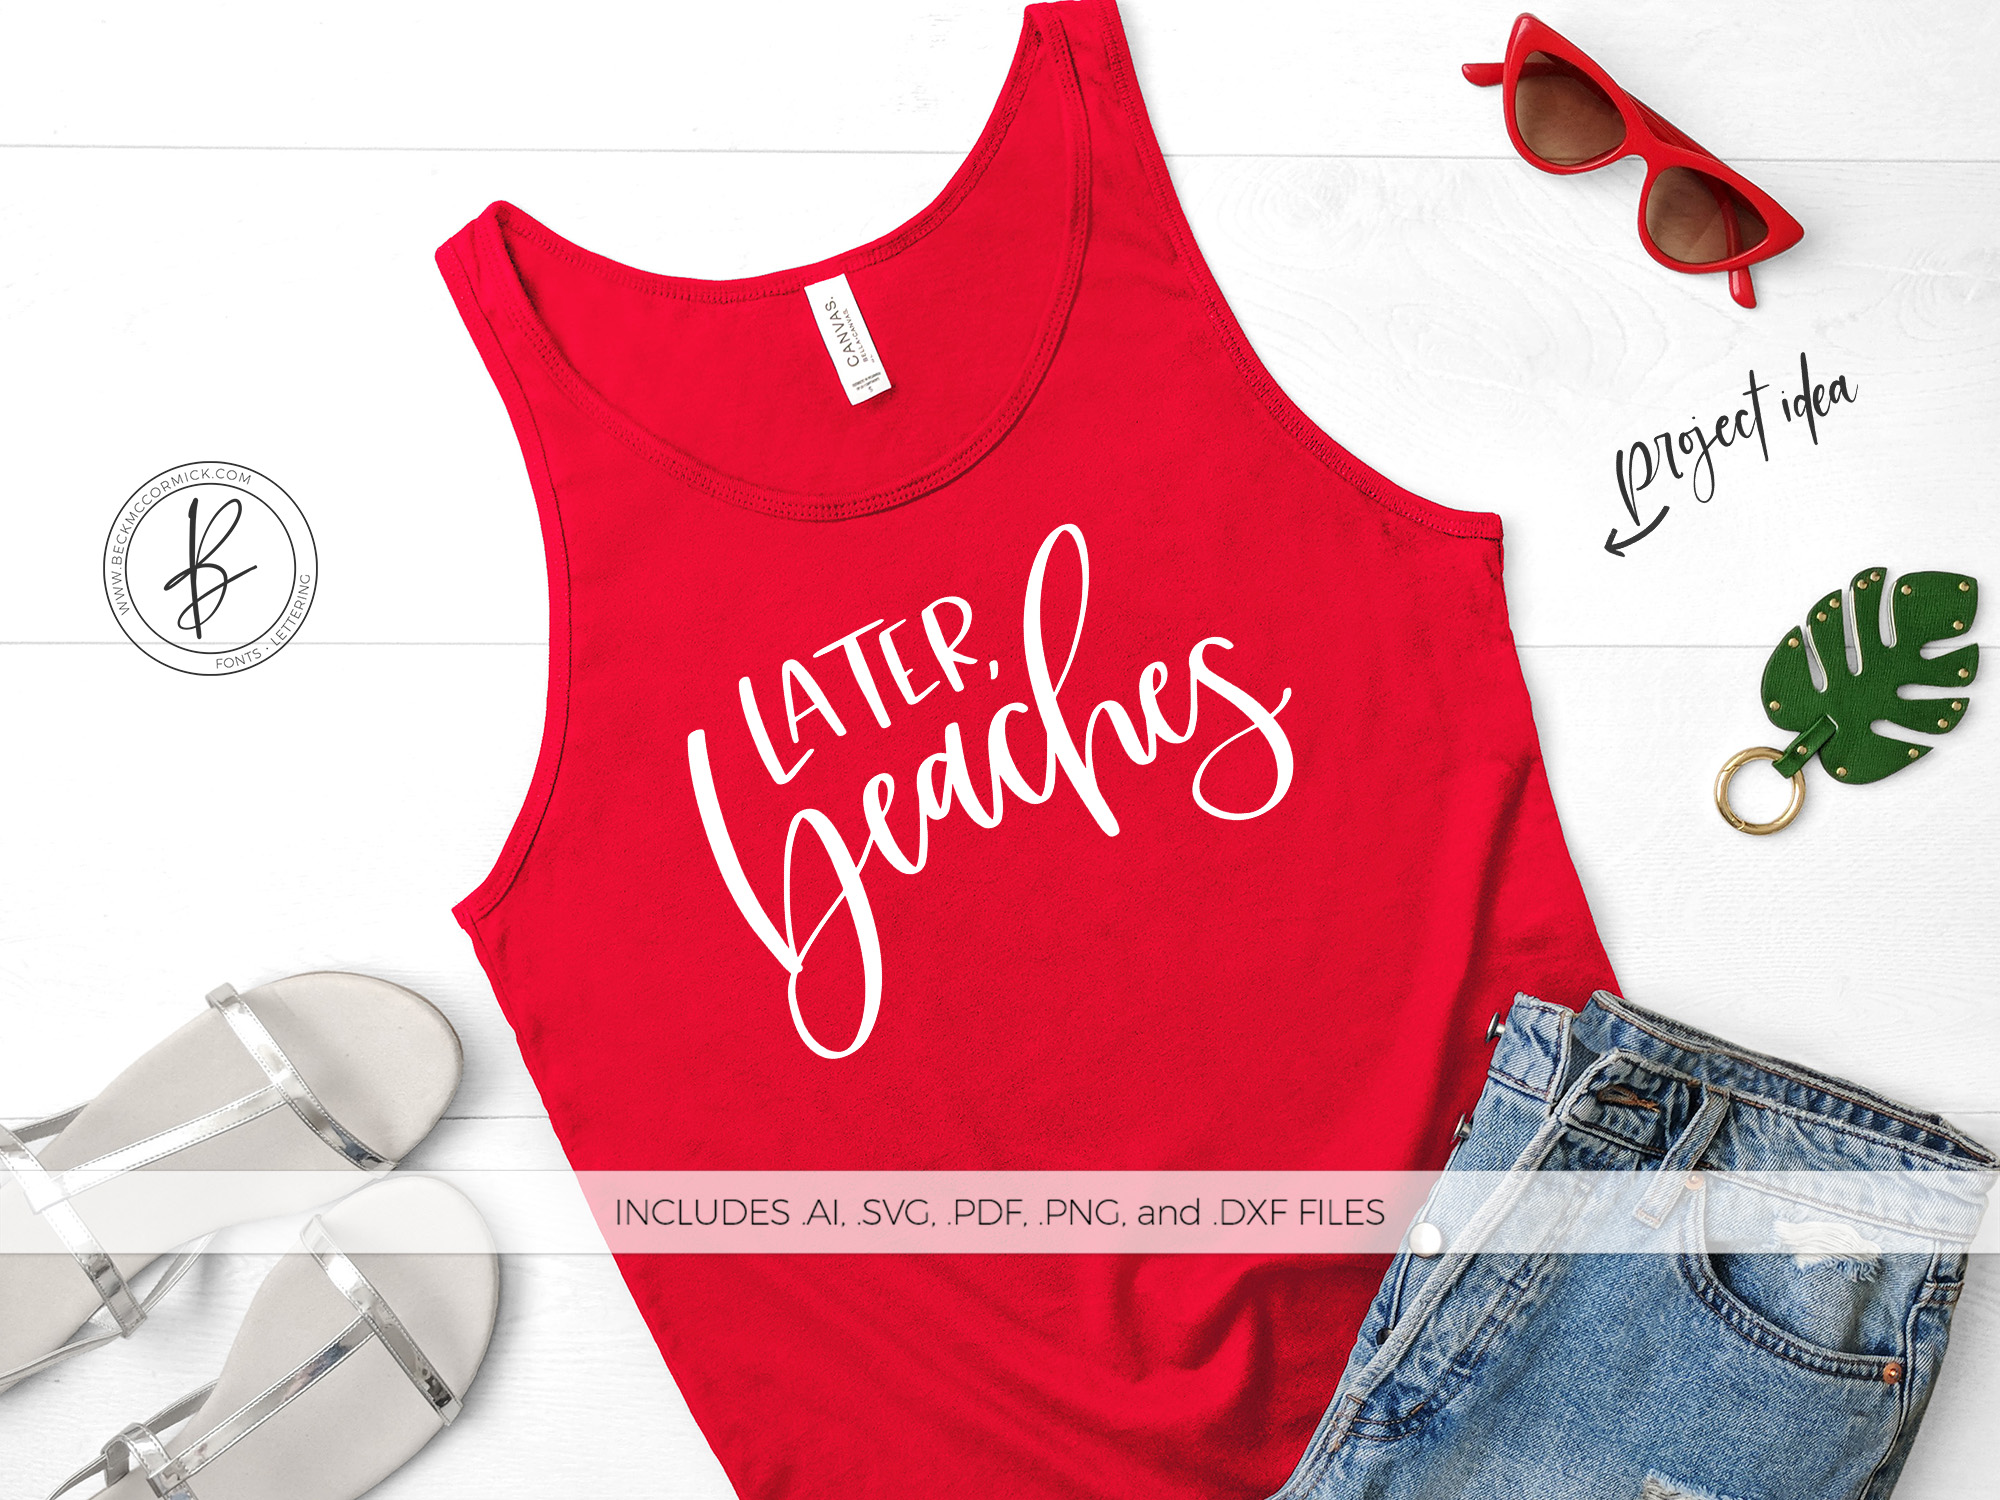 Download Free Later Beaches Graphic By Beckmccormick Creative Fabrica for Cricut Explore, Silhouette and other cutting machines.